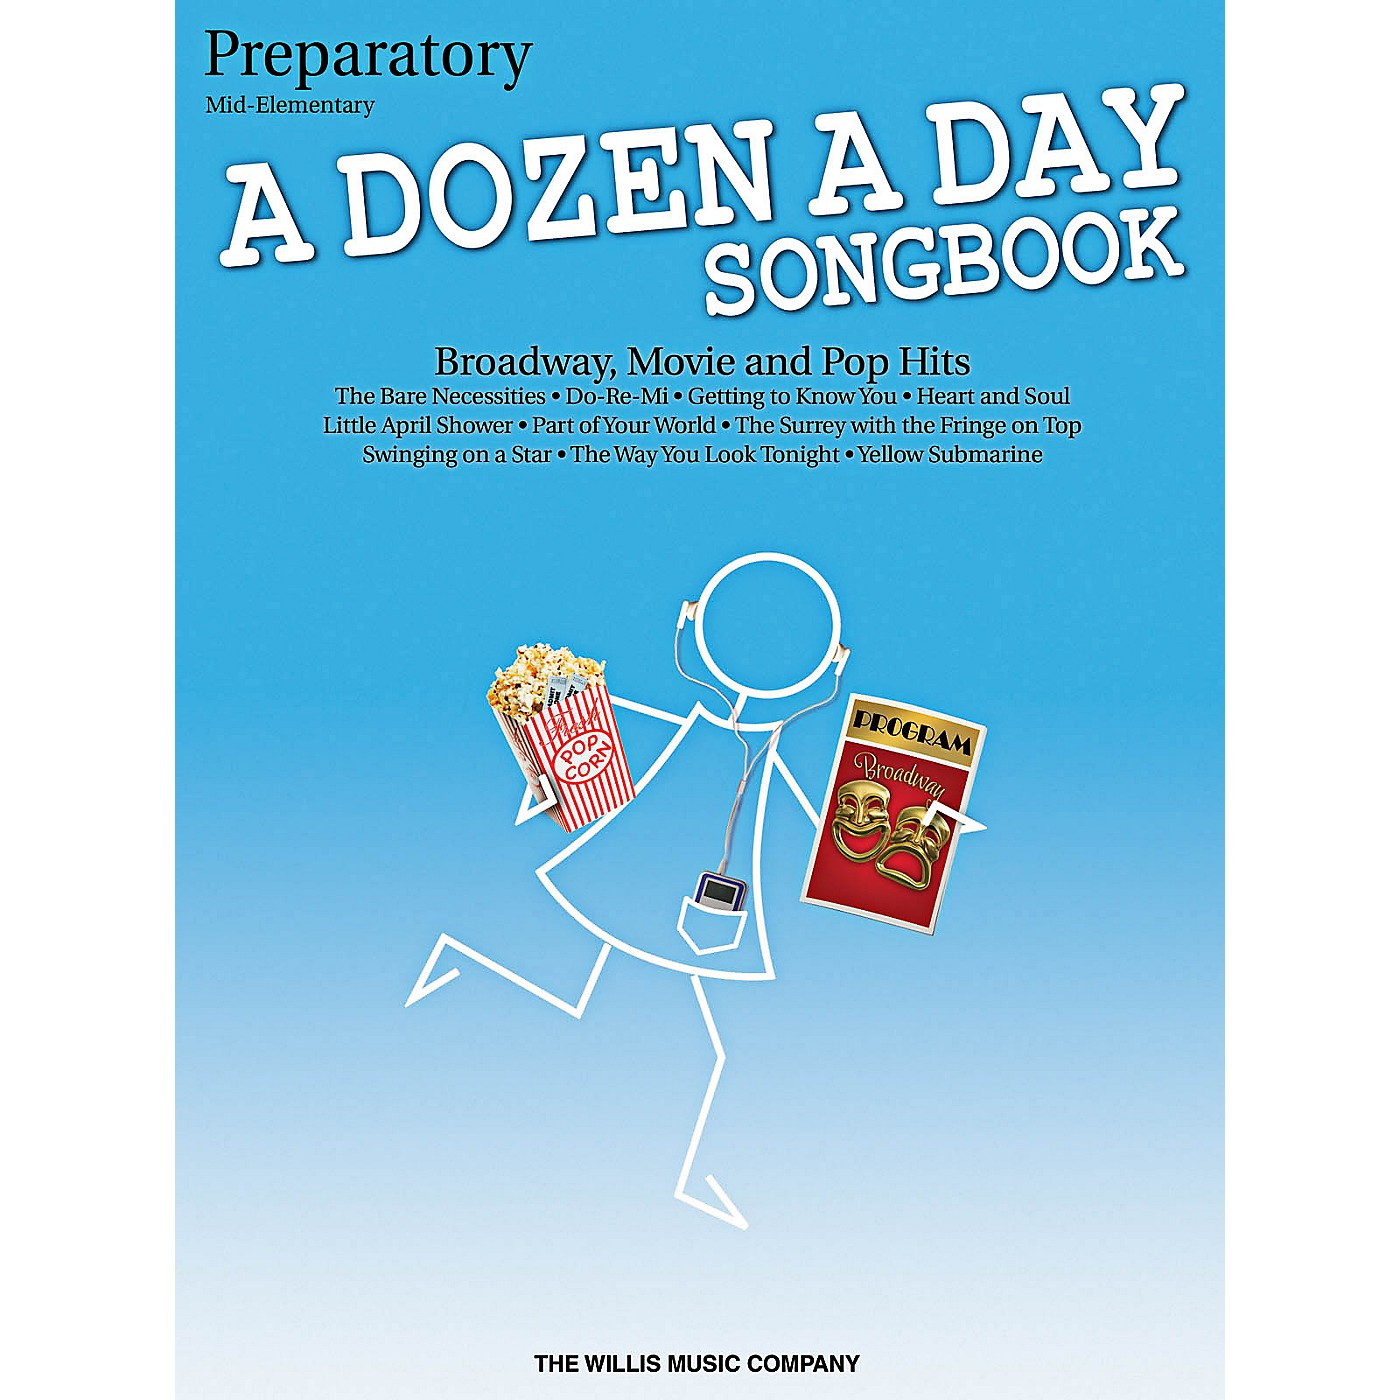 Willis Music A Dozen A Day Songbook - Preparatory Book Mid-Elementary Level for Piano thumbnail